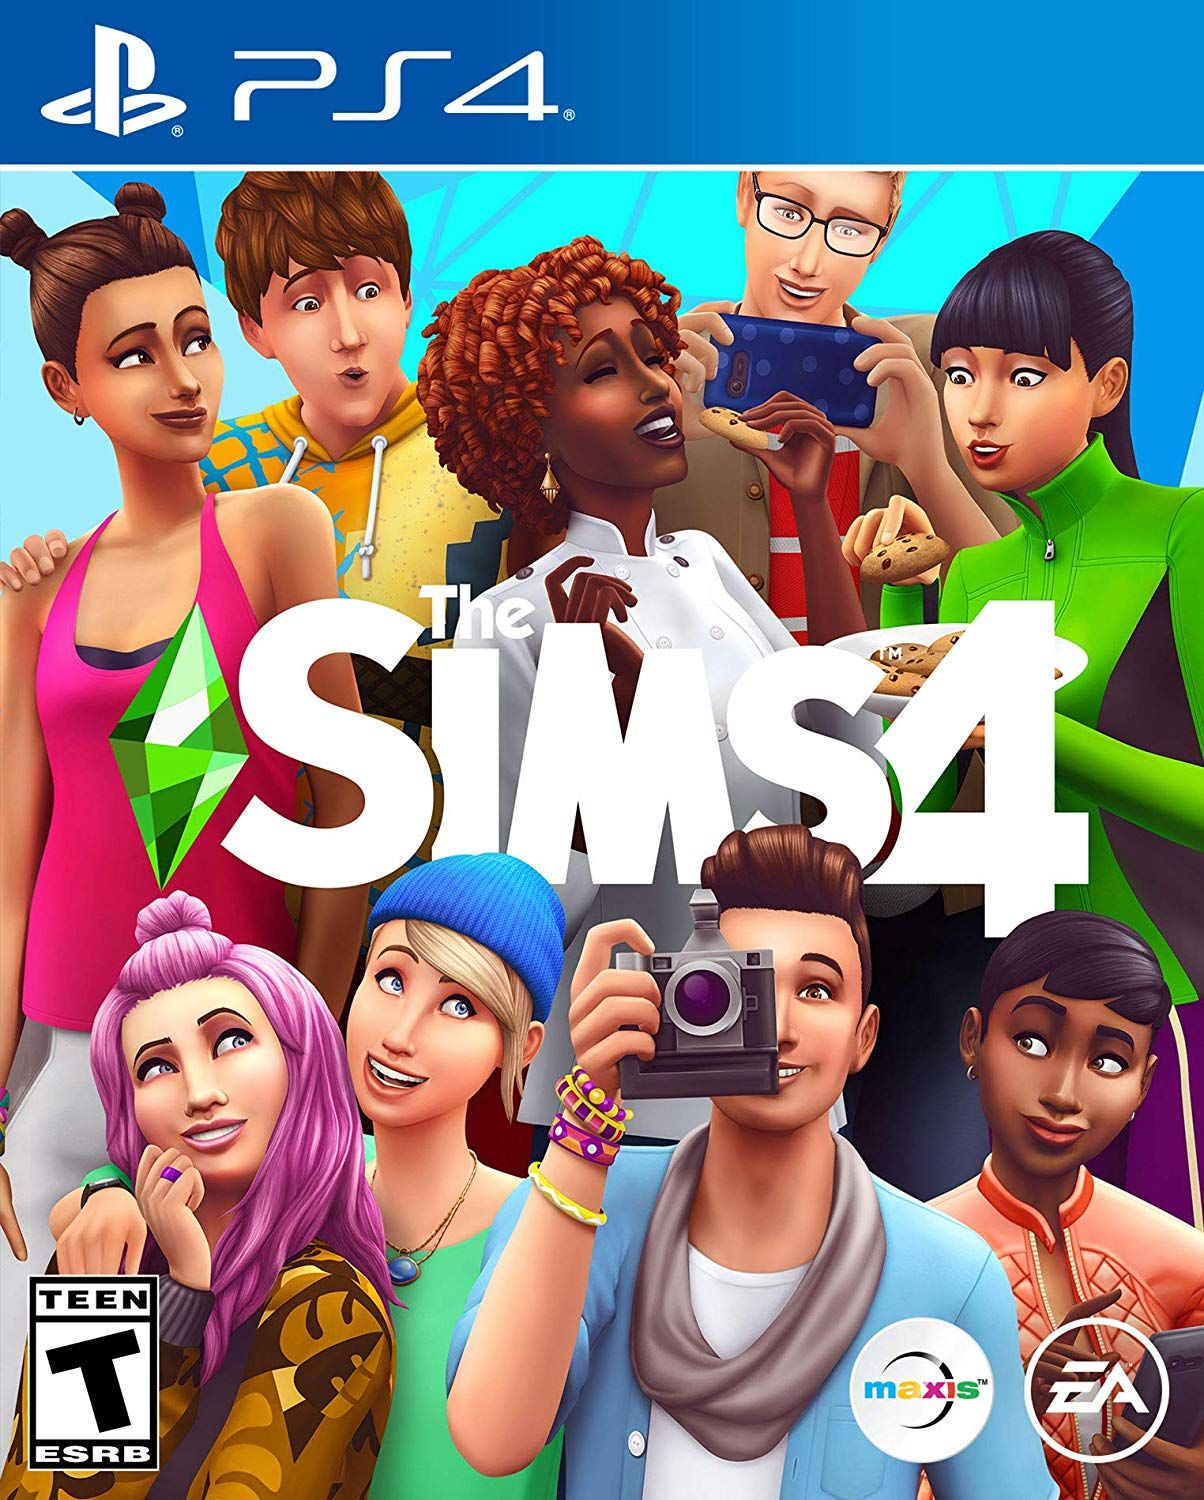 The Sims 4 Playstation 4 Walmart Com Xbox One Games Game Codes Sims 4